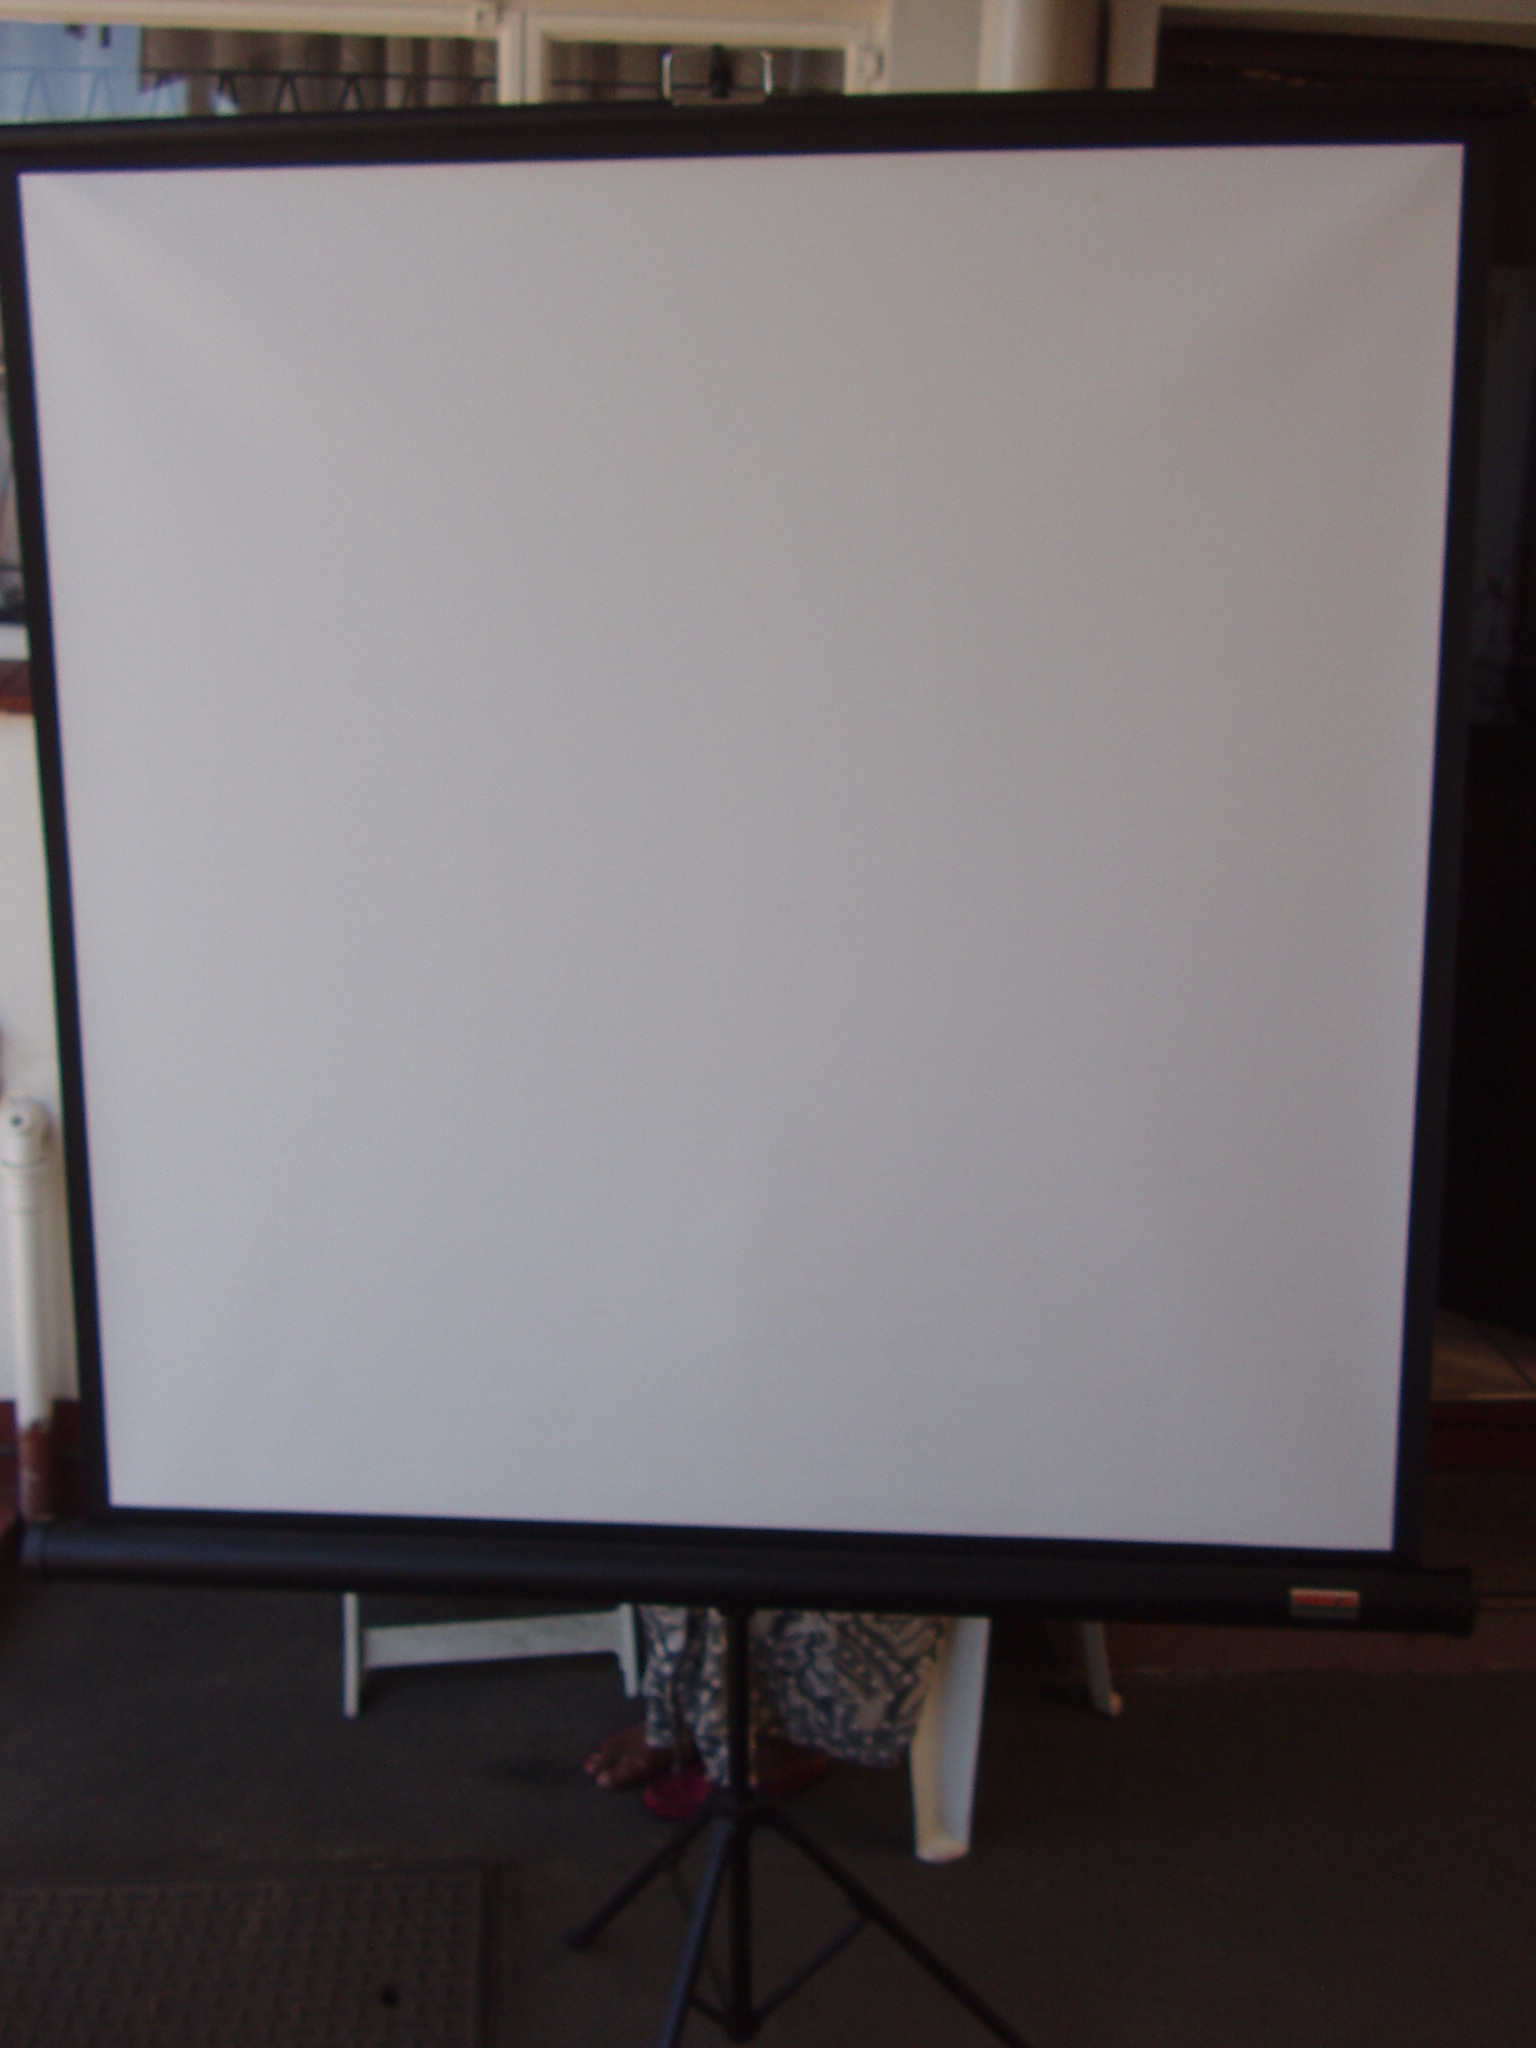 Projector Screen - Parrot - On Tripod Stand - 1250 x 1250mm